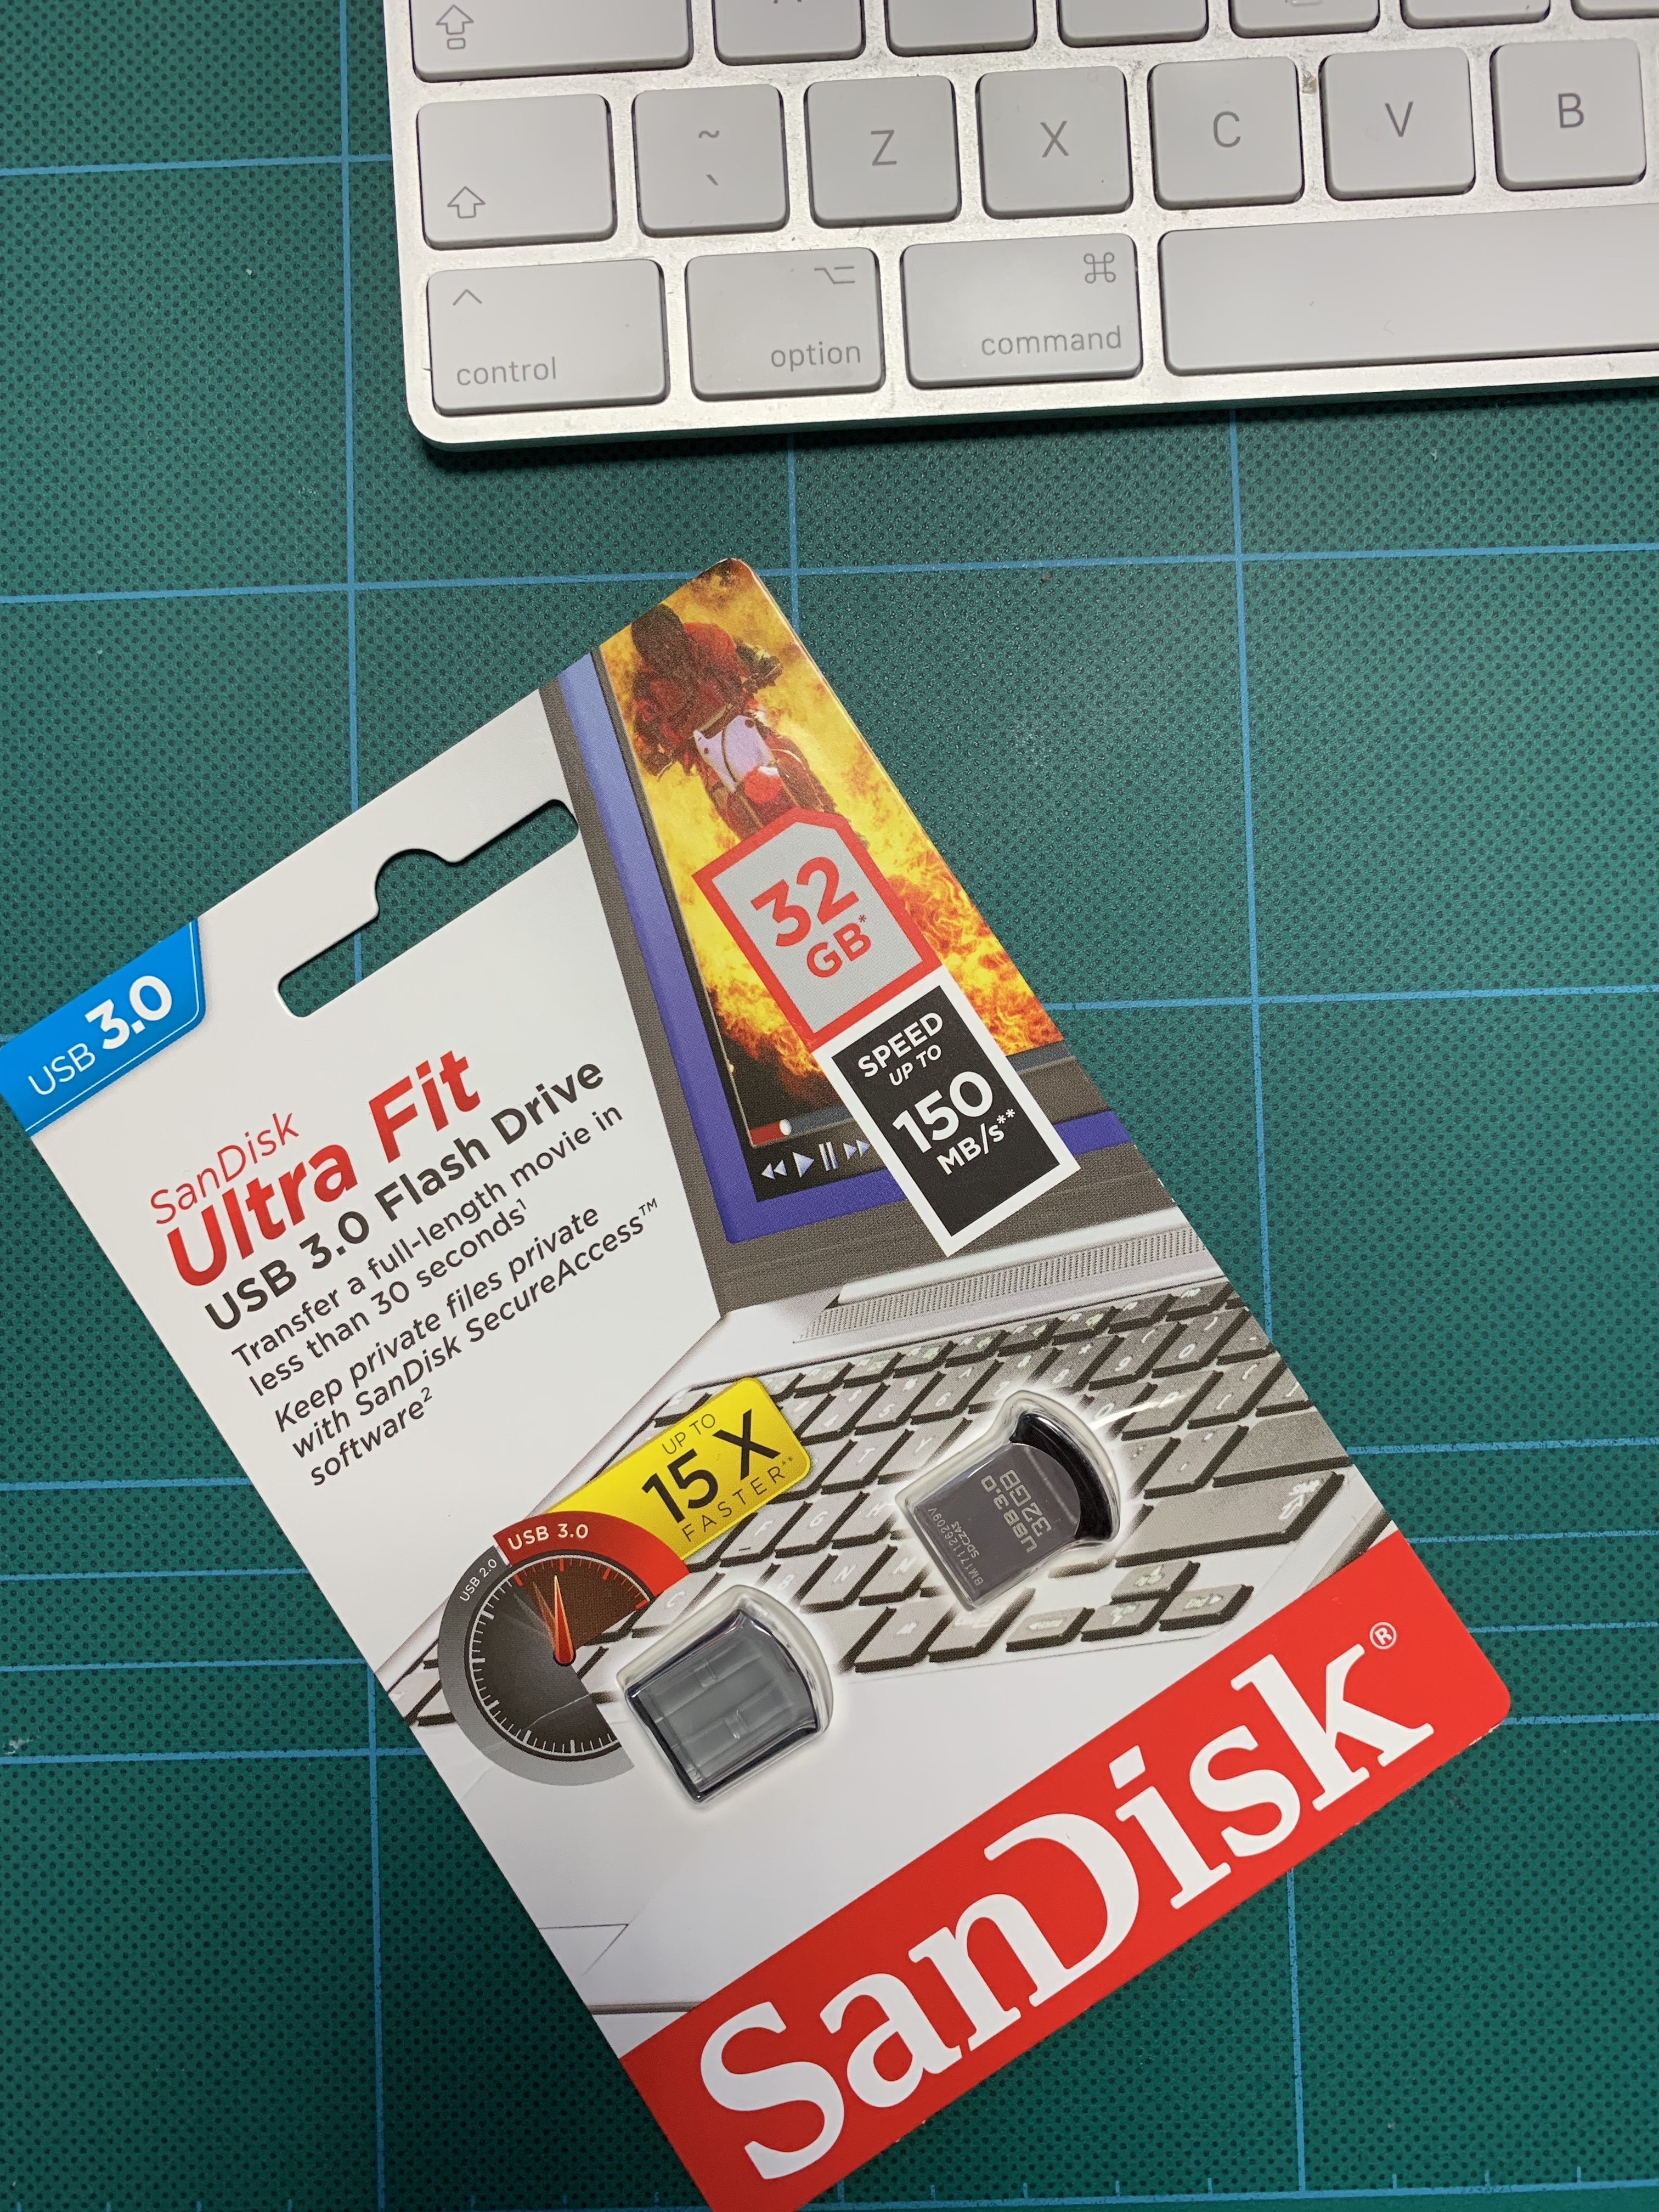 Tesla-USB-Stick-Dashcam - Gadget Geek Boy